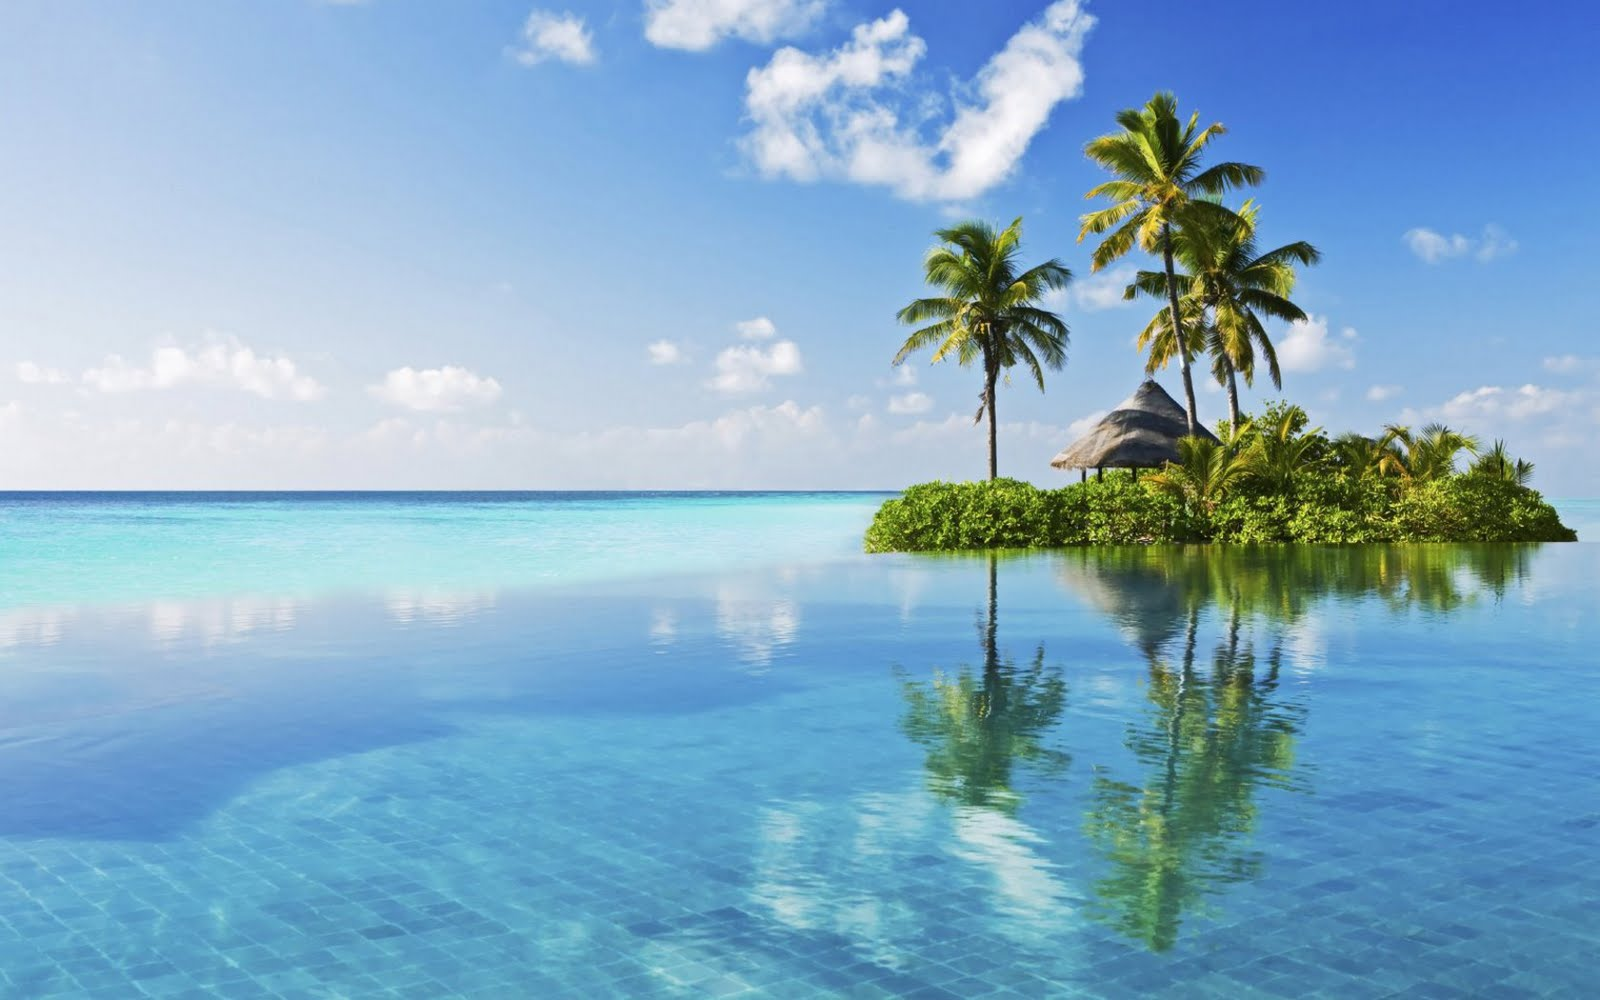 Palm Tree Wallpaper 10034 Hd Wallpapers in Beach   Imagescicom 1600x1000